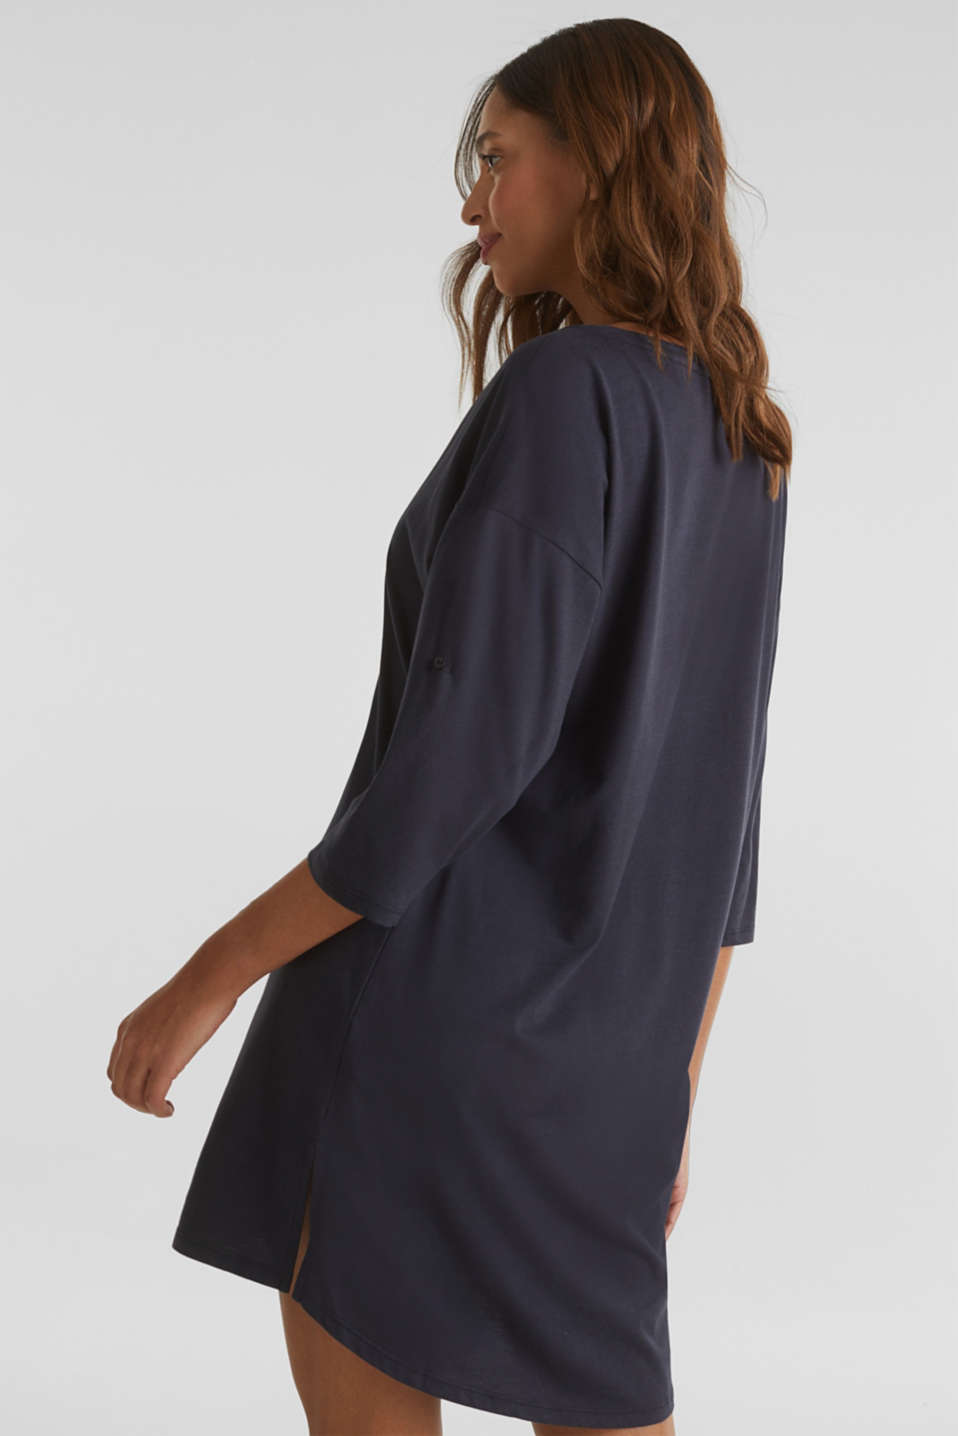 Tunic top with turn-up sleeves, NAVY, detail image number 2